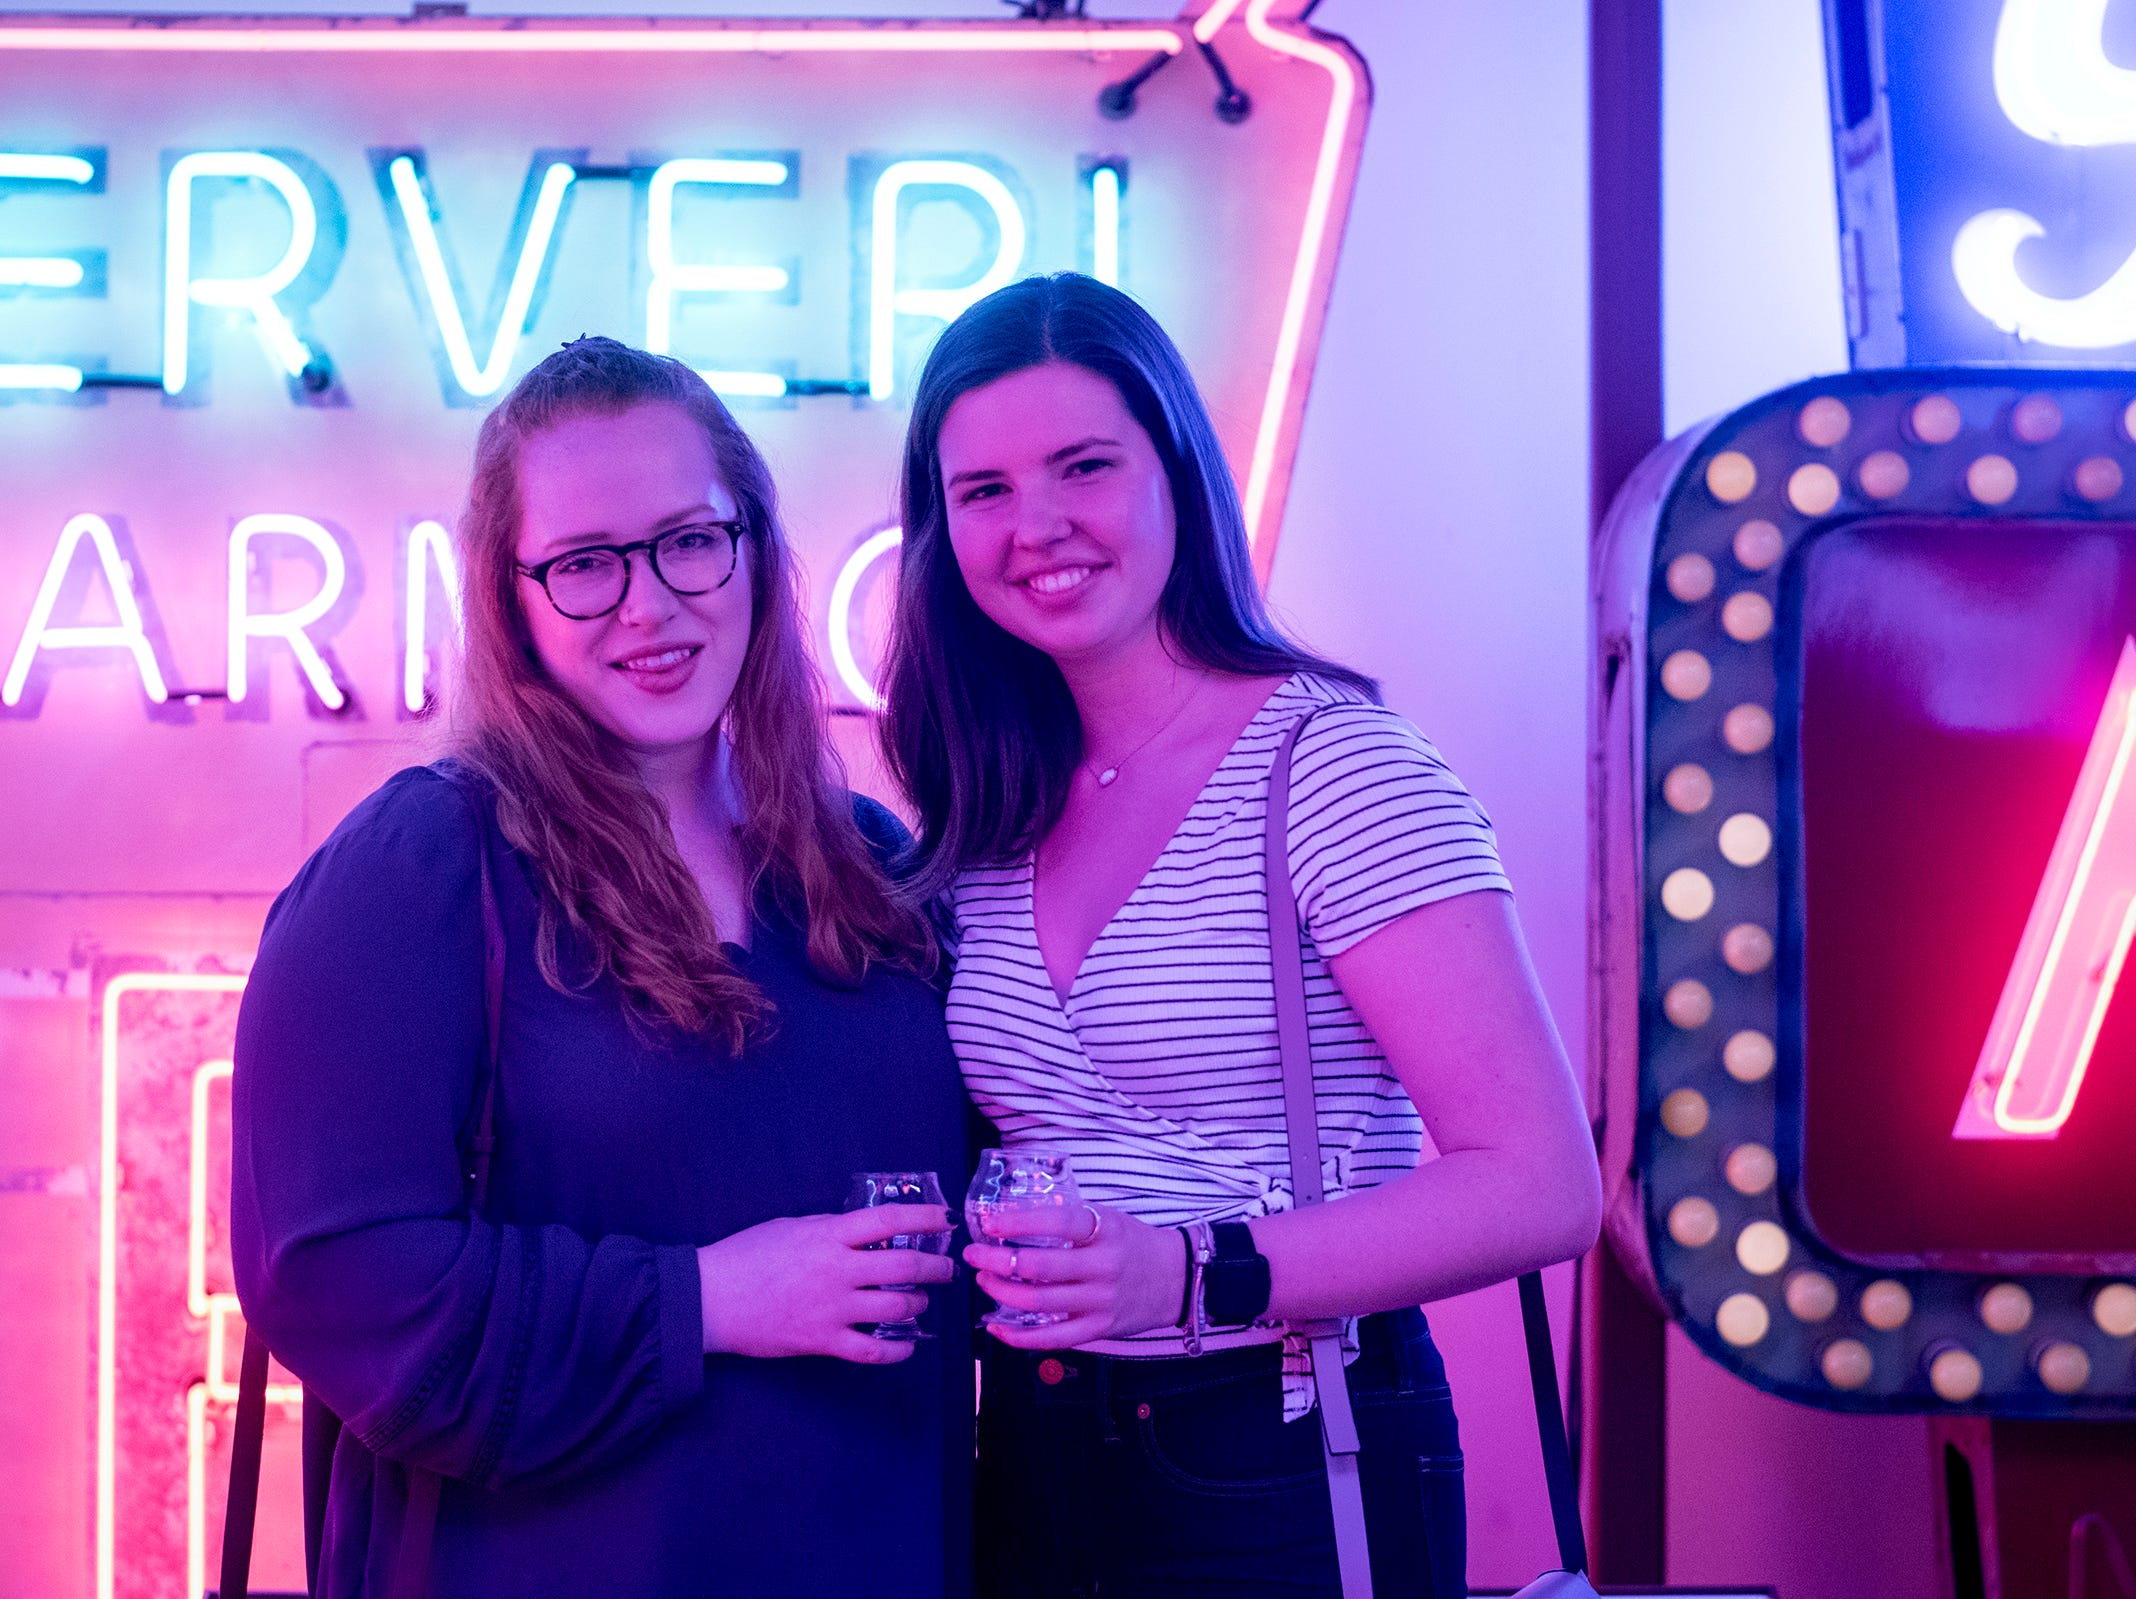 Rachel Serafin and and Brooke Long of Clifton attend Signs and Suds, featuring Rhinegeist beers at the American Sign Museum Thursday, January 24, 2019 in Cincinnati, Ohio.